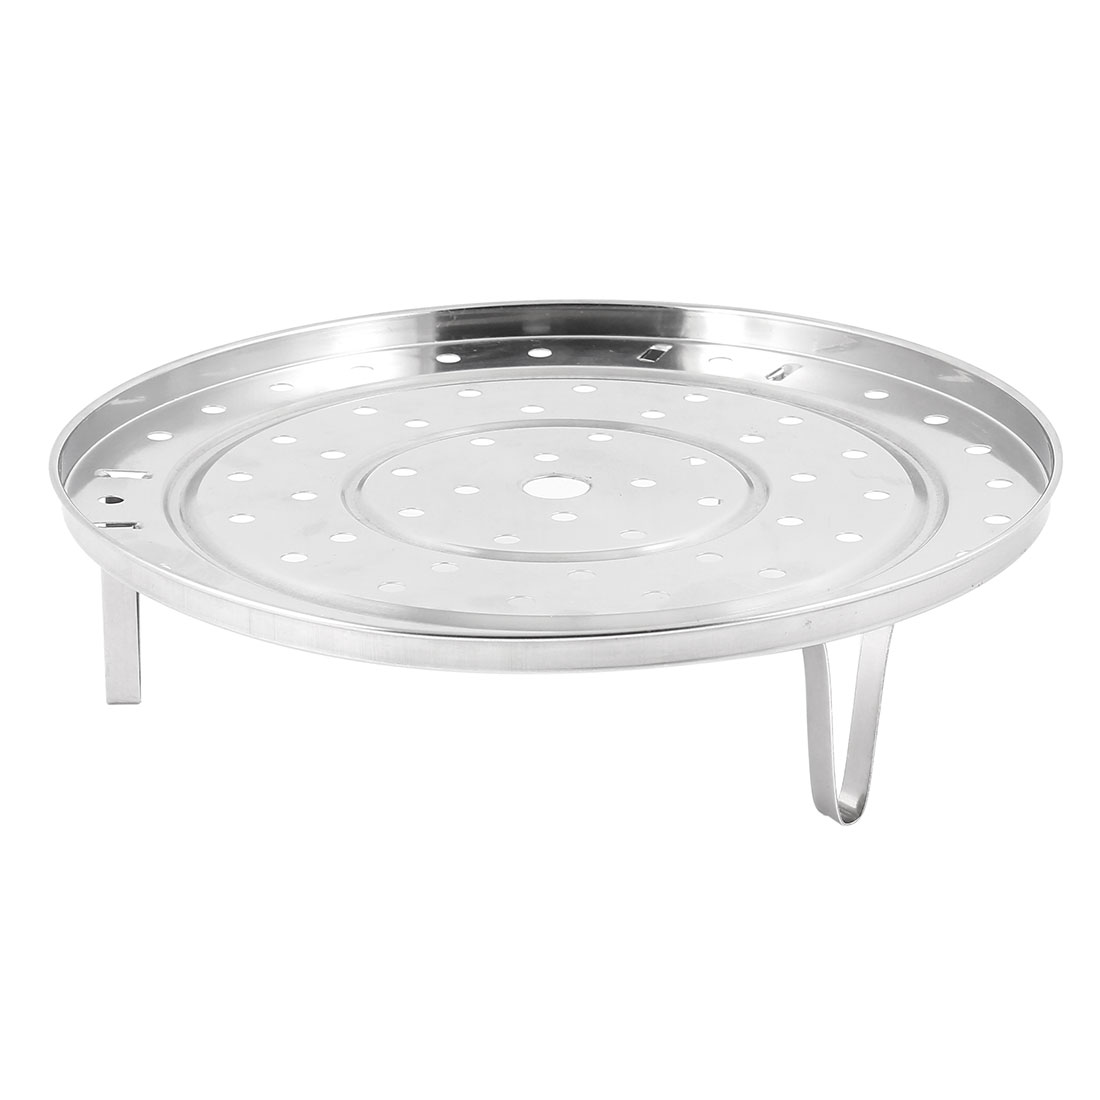 "Kitchenware Stainless Steel 10"" Diameter Steaming Steamer Rack"